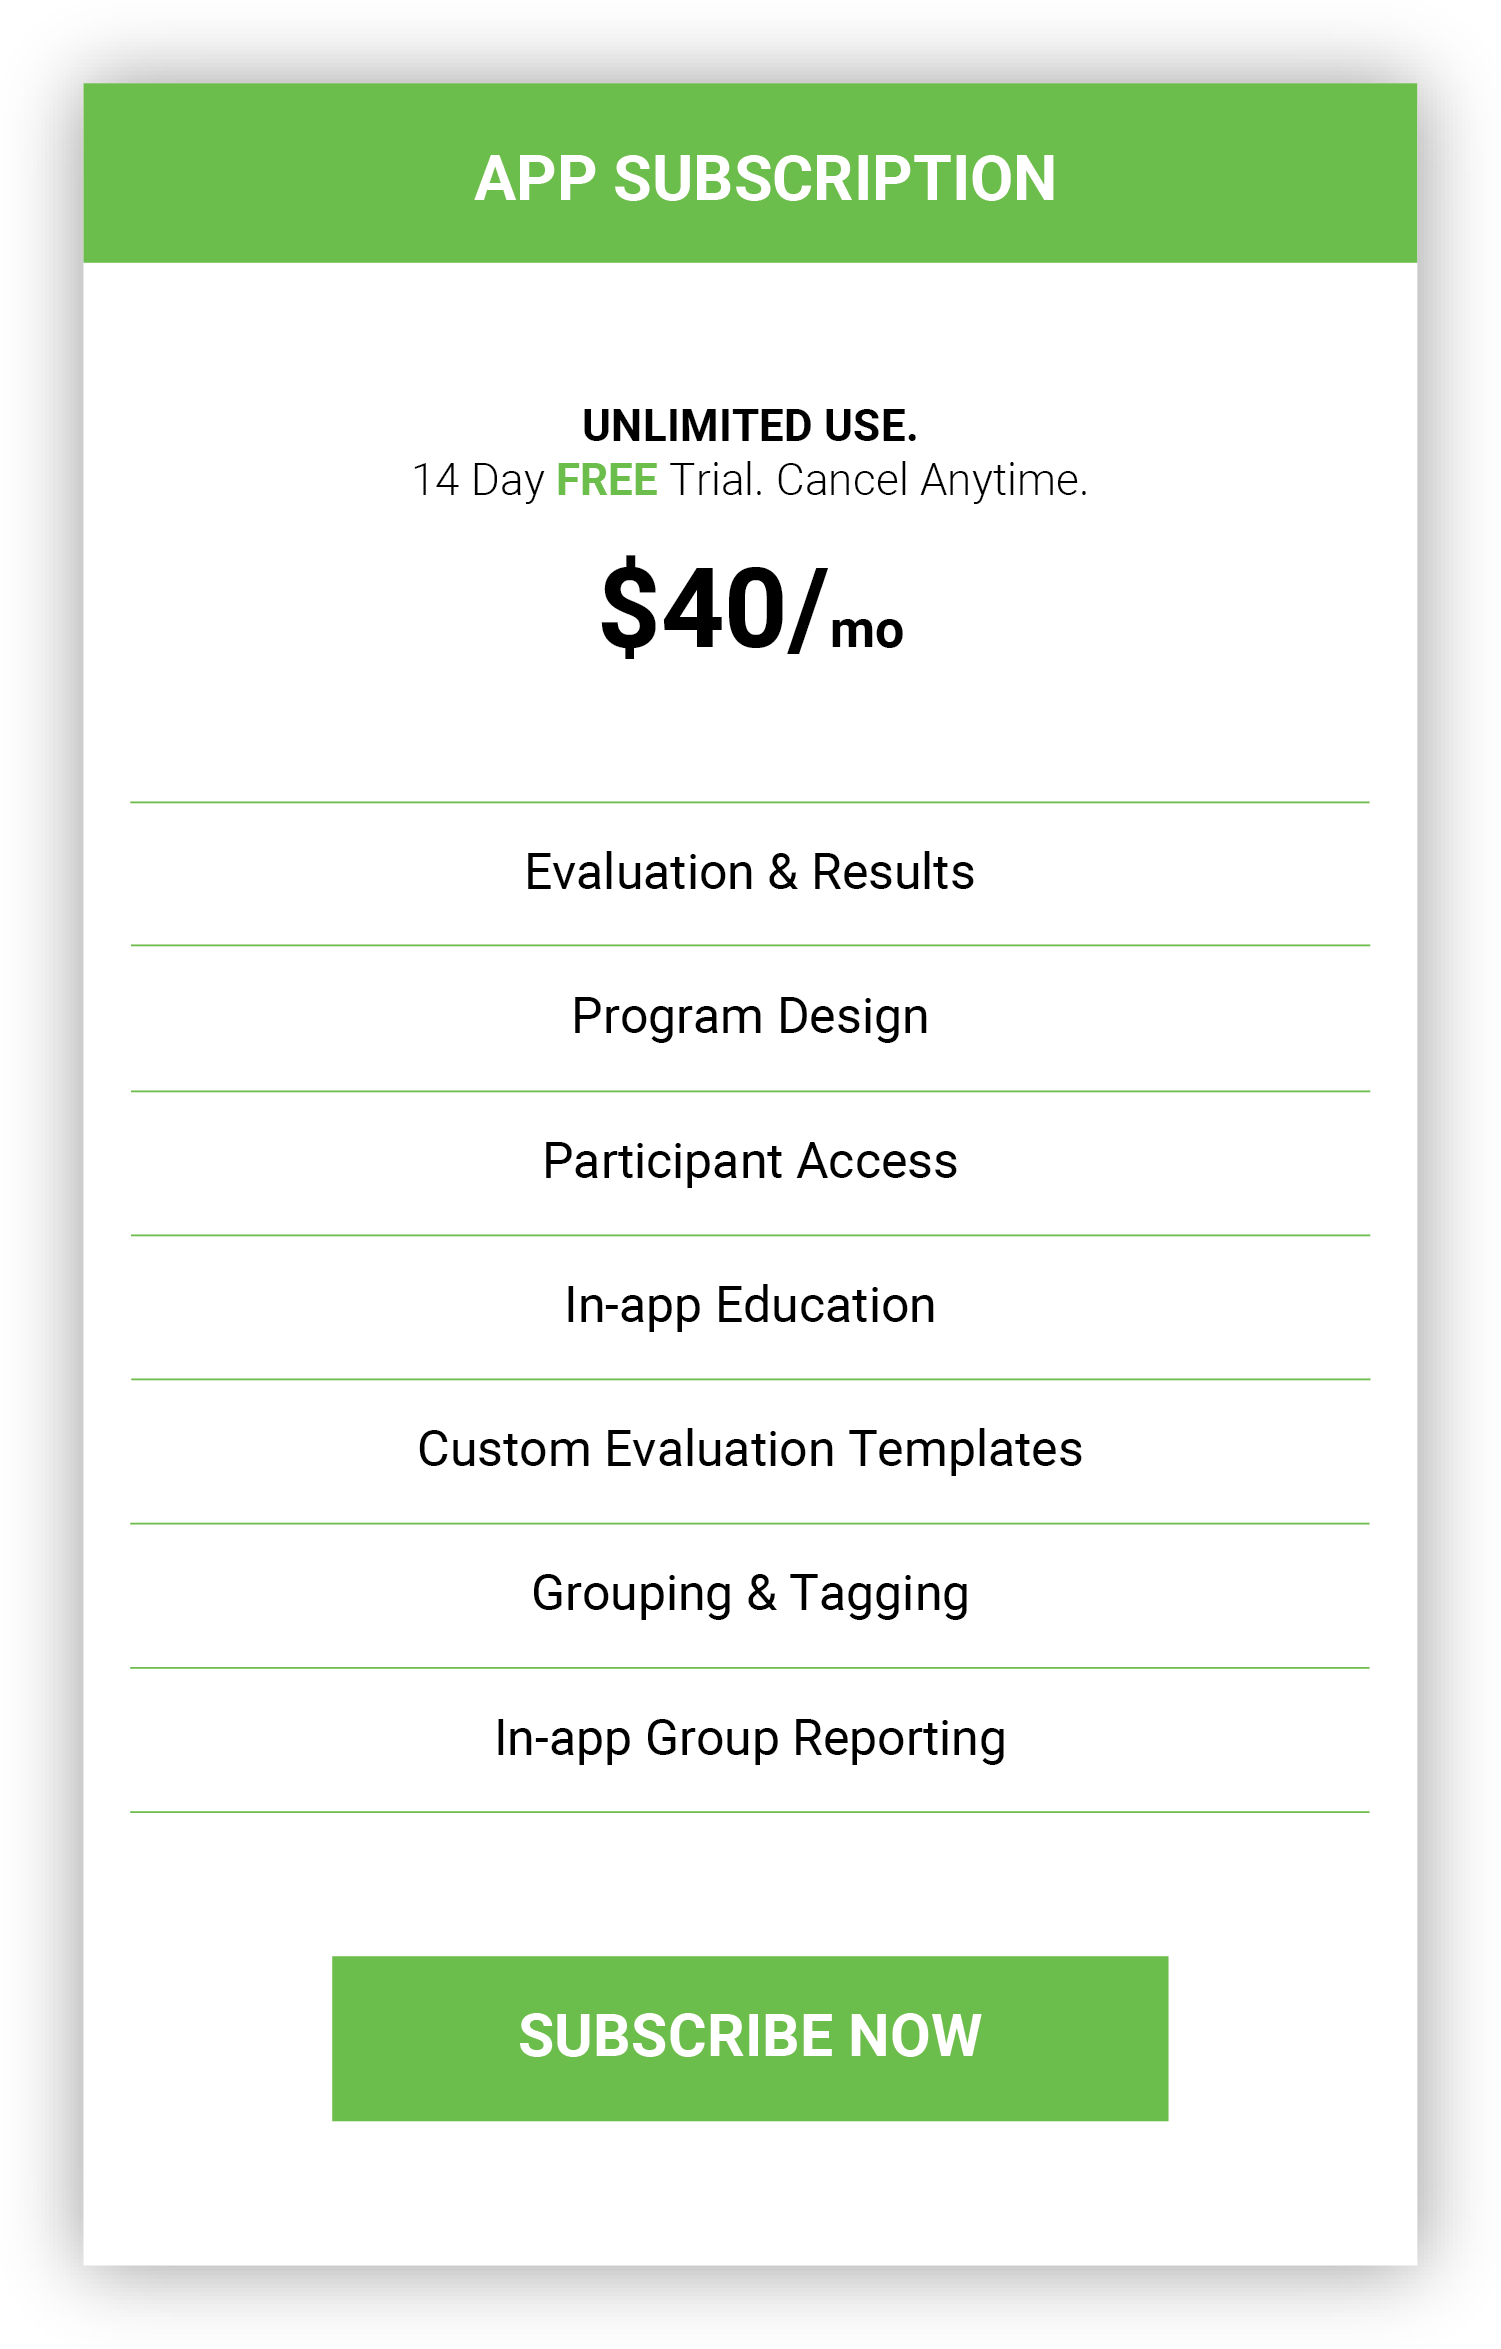 Kinesics_WebsiteImages_Pricing_20190624-01.png